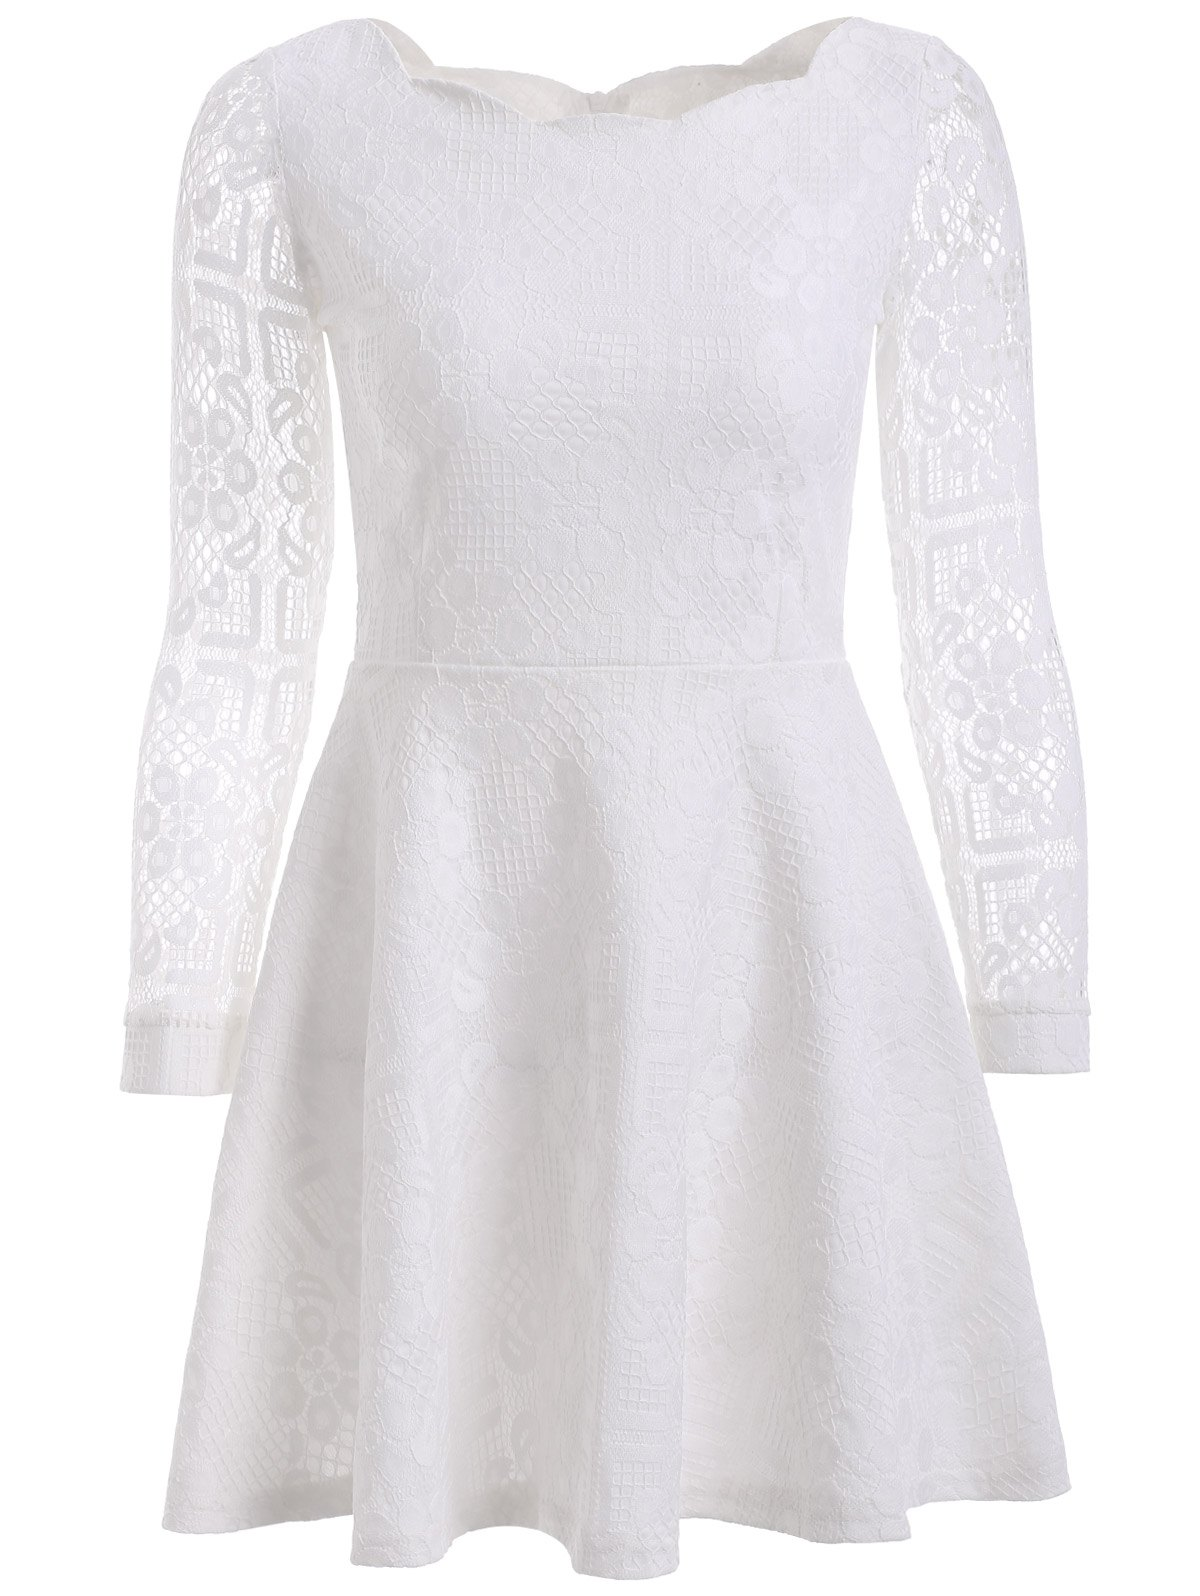 Affordable Floral Embroidered Lace Casual Wedding Dress